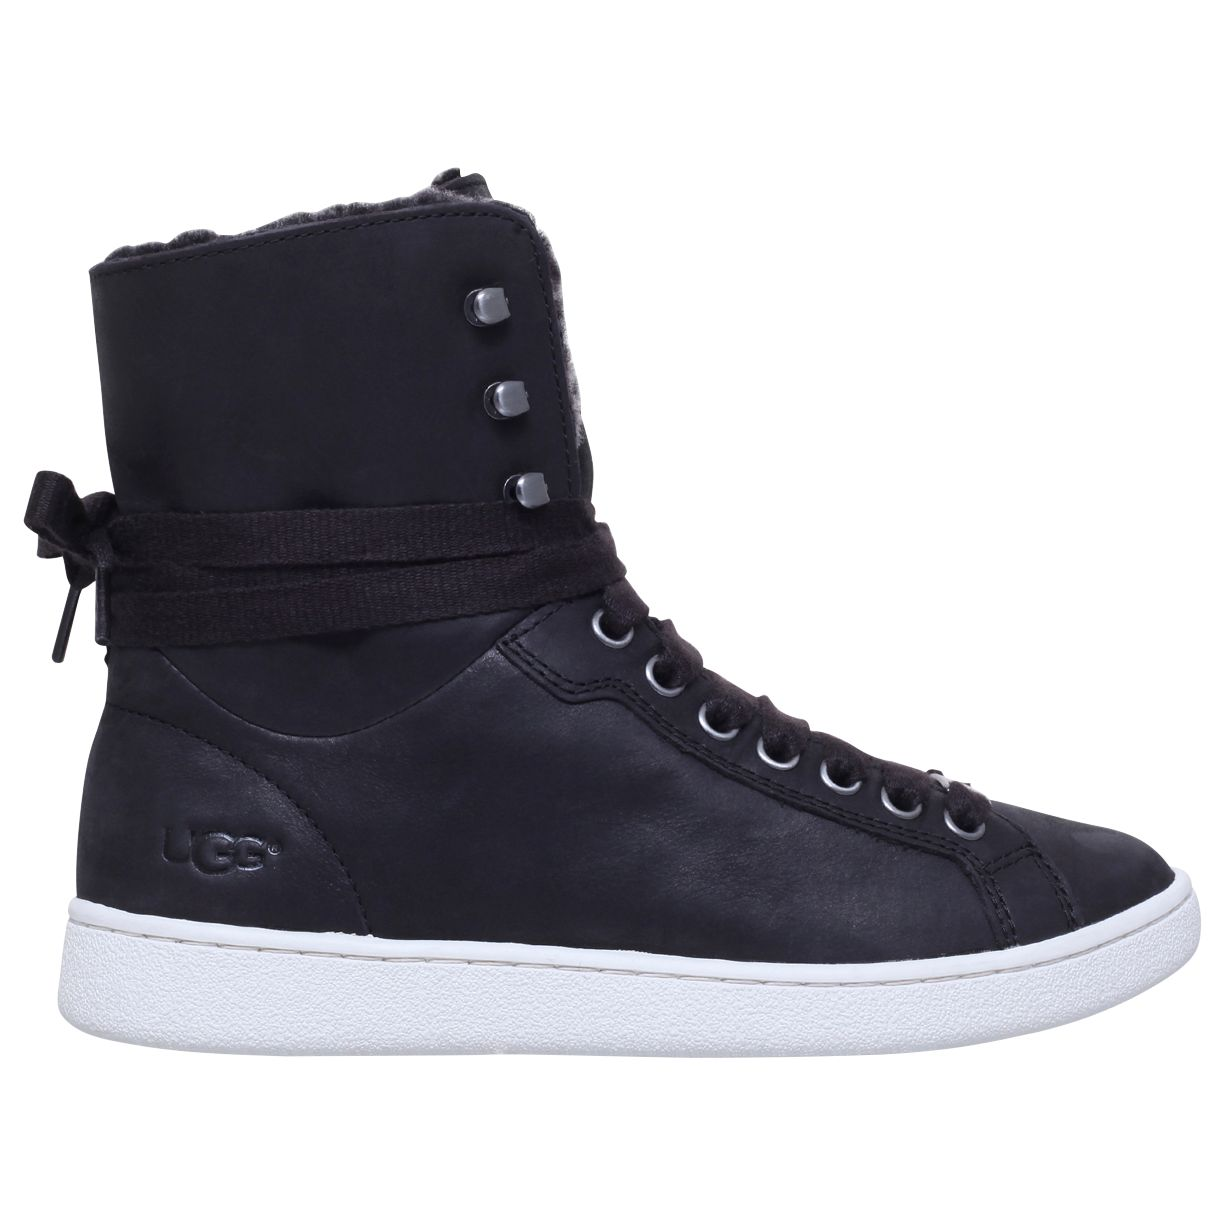 6dbdac9dd3c UGG Starlyn Sheepskin High Top Trainers at John Lewis & Partners